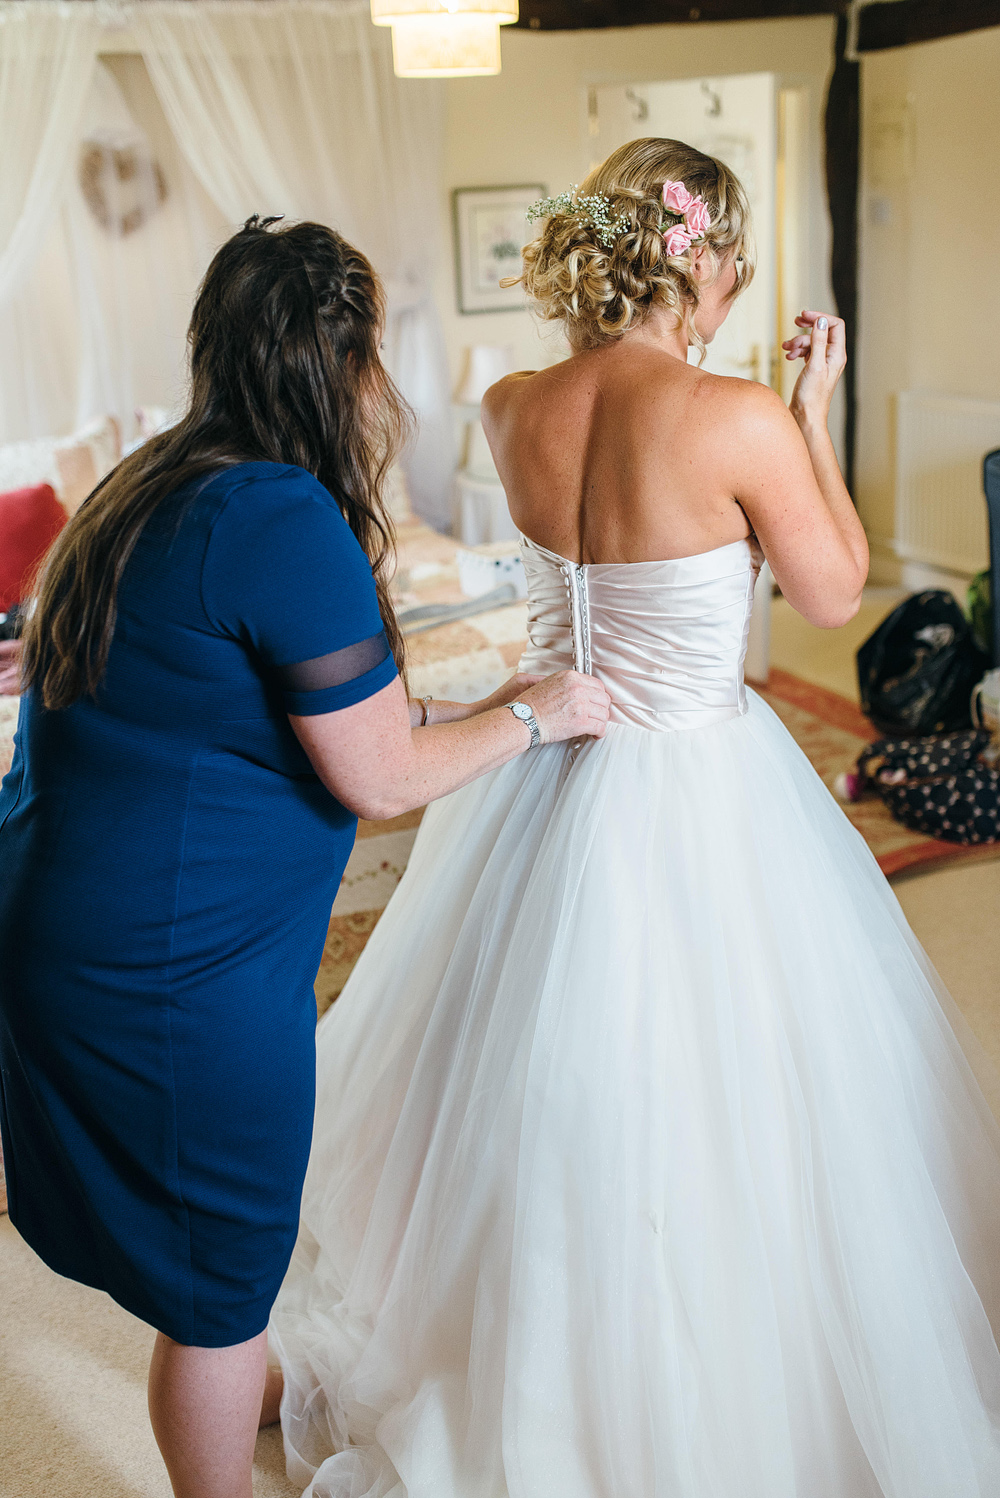 Guest helping bride get into dress